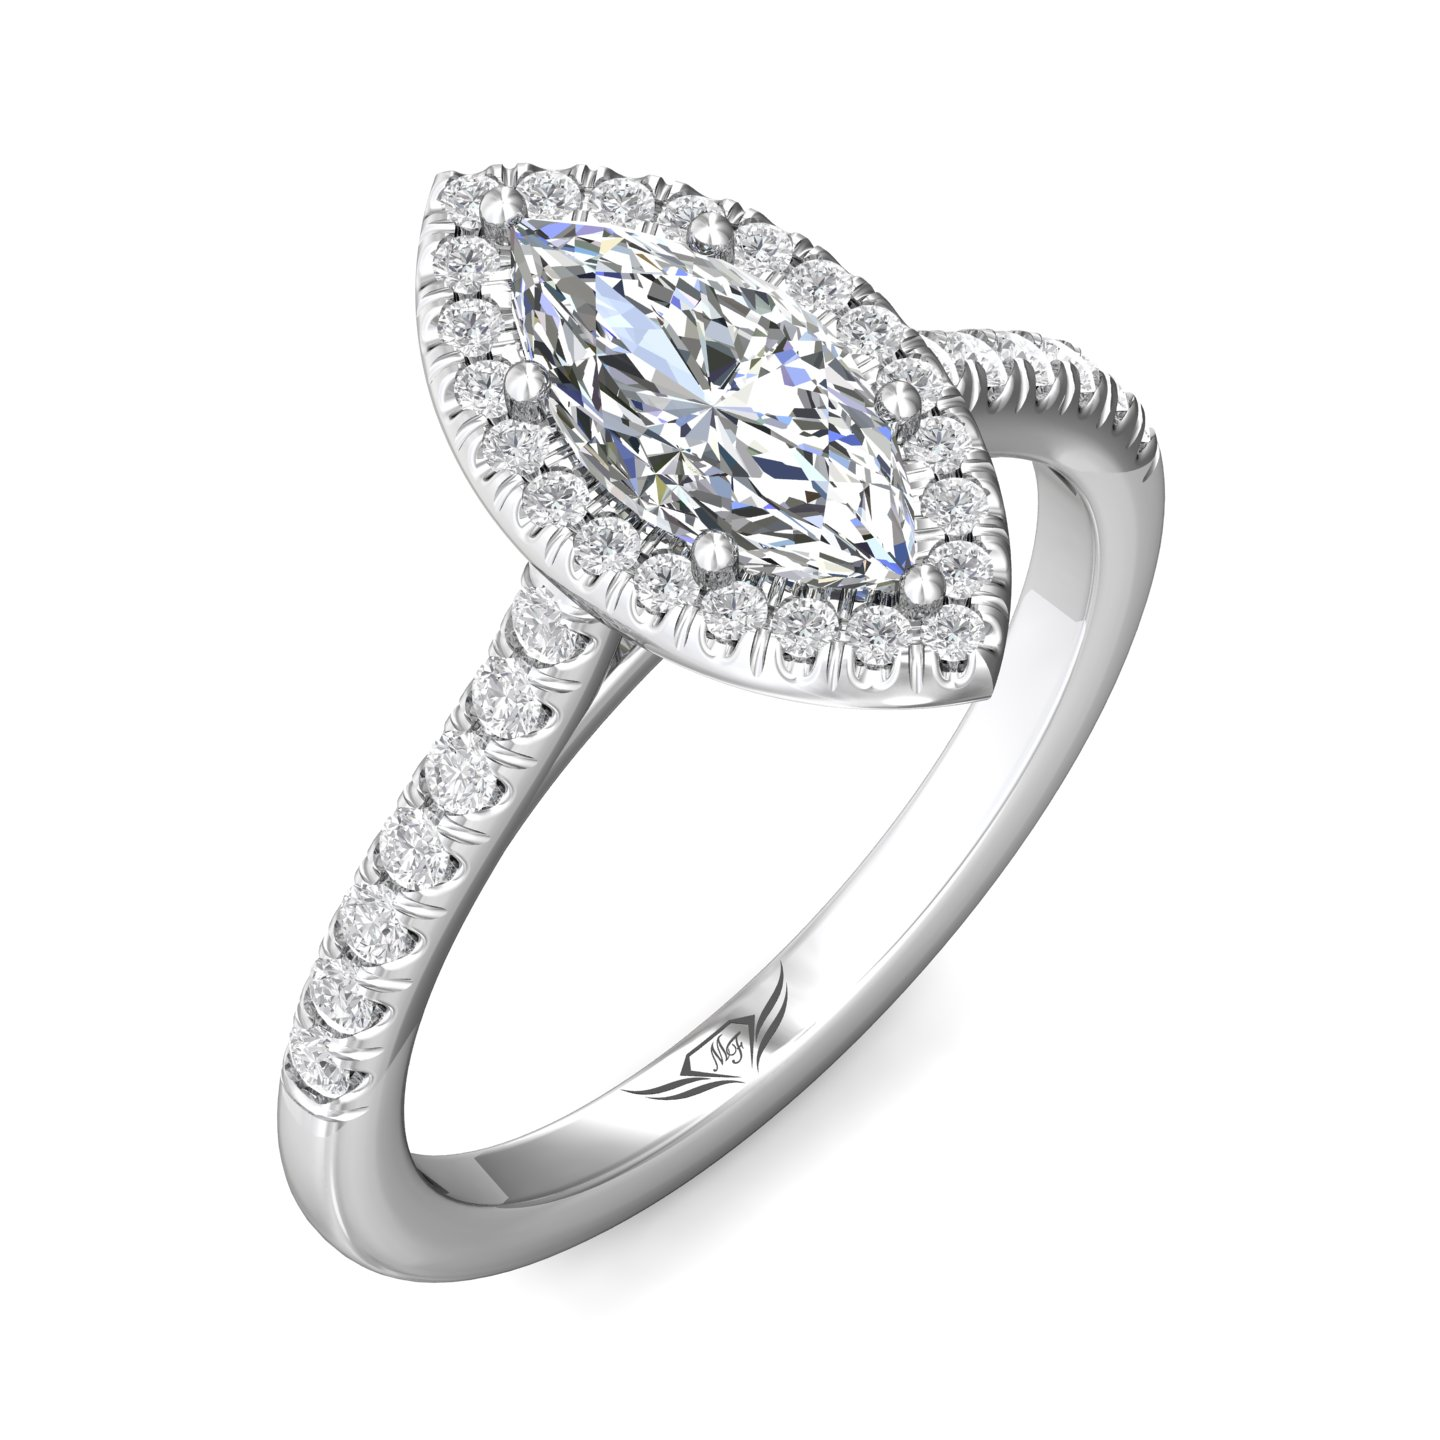 14K White Gold FlyerFit Micropave Halo Engagement Ring Image 5 Grogan Jewelers Florence, AL